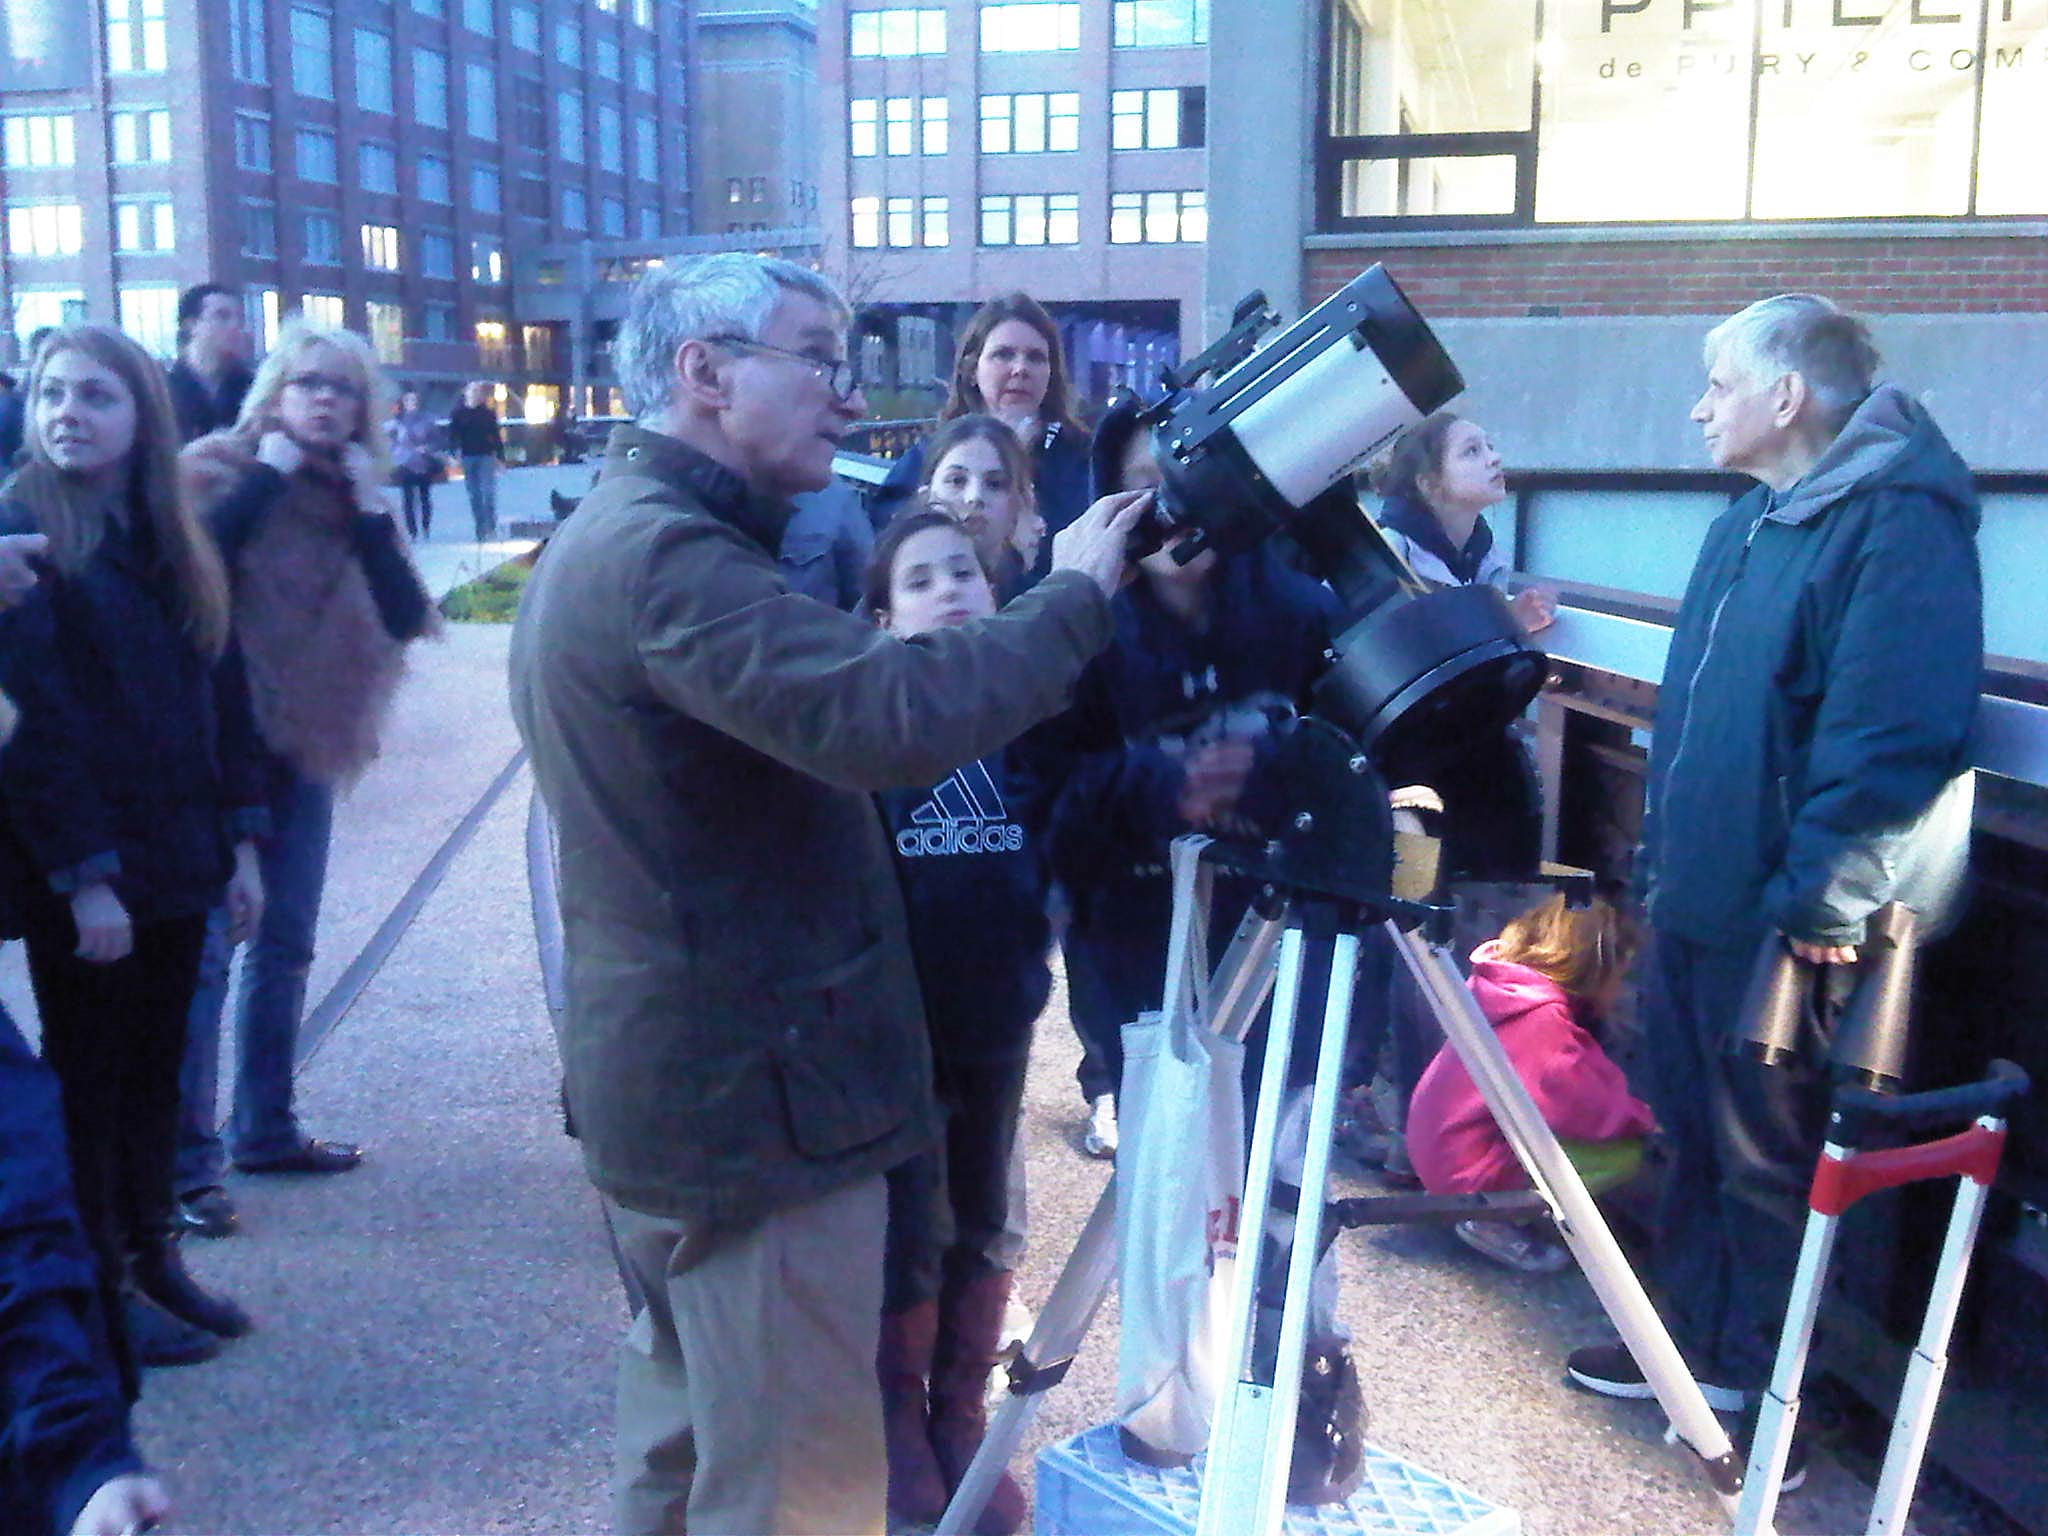 Urban Skywatching: NYC Amateur Astronomers Take In the Night